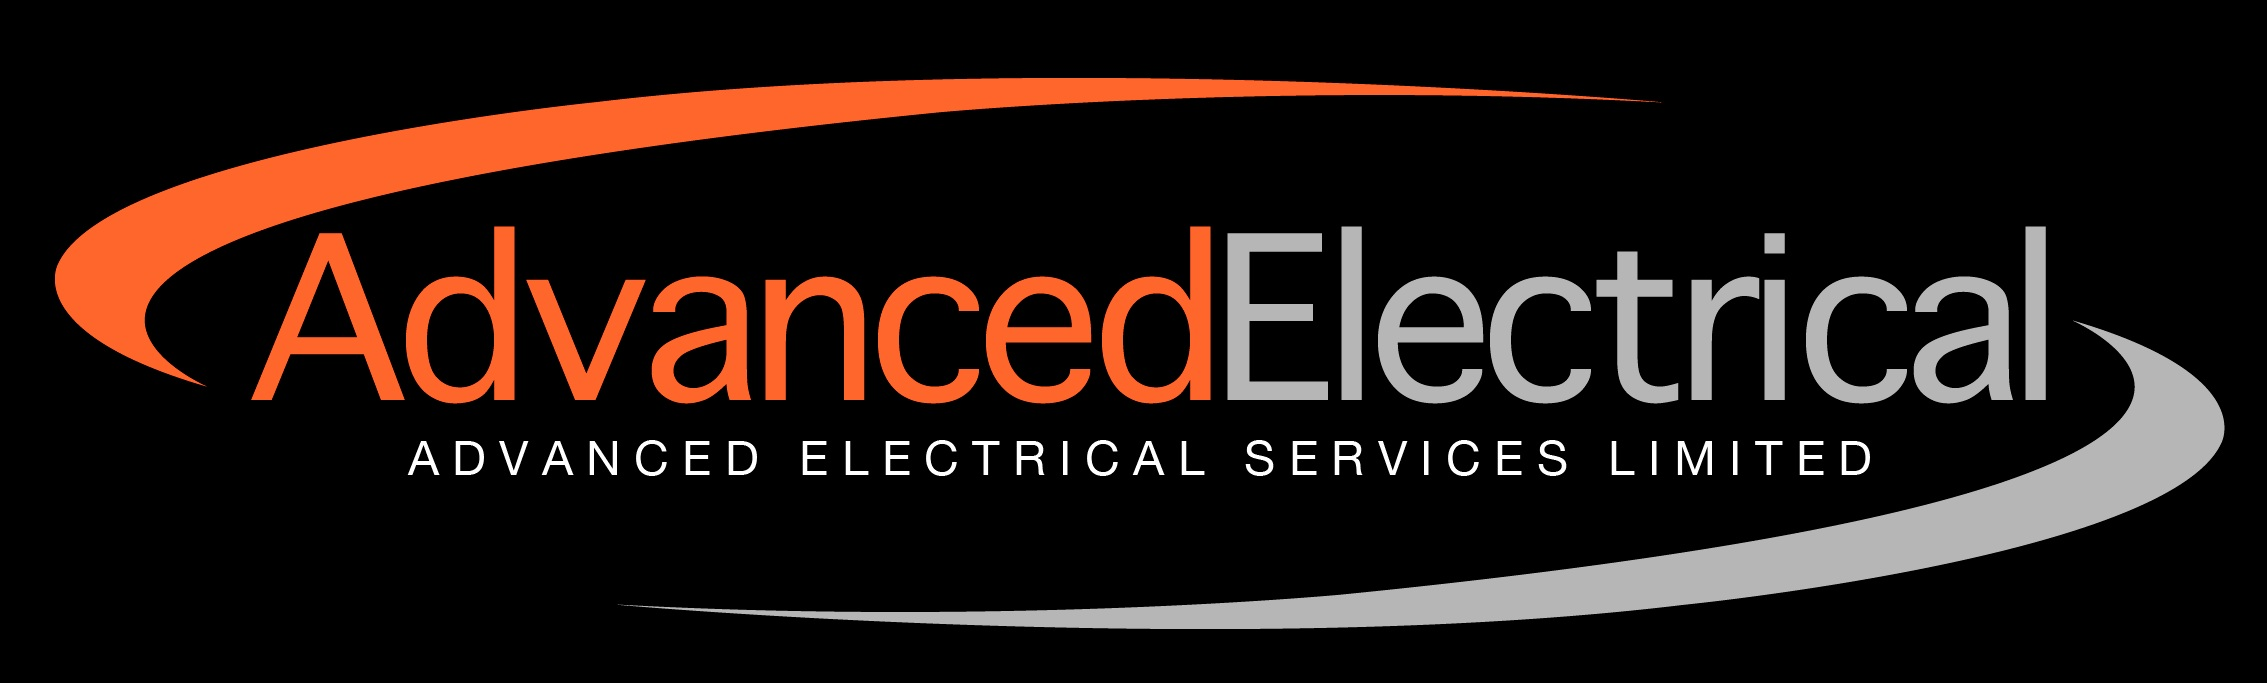 Advanced Electrical Services.png